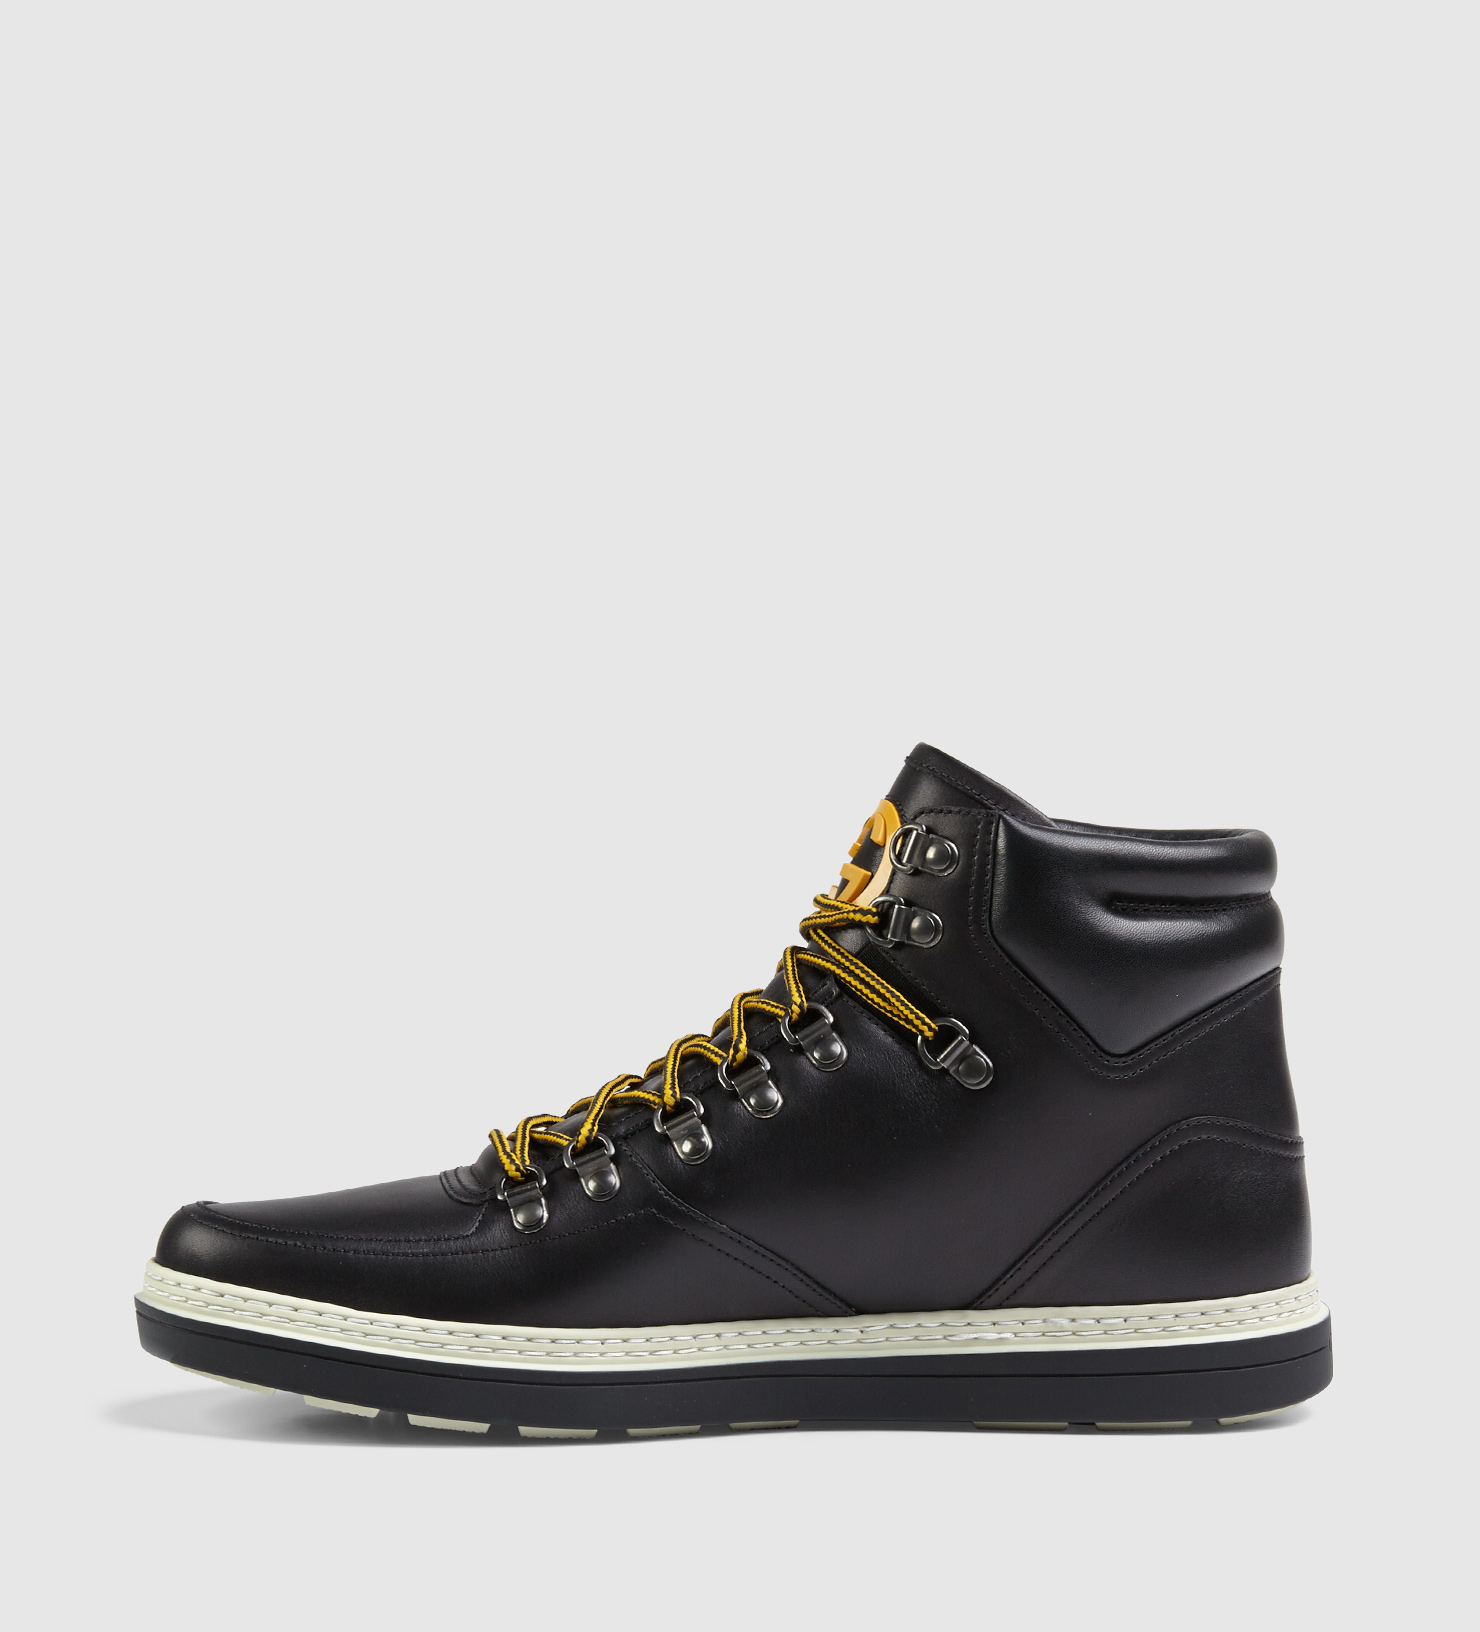 lyst gucci leather trekking boot in black for men